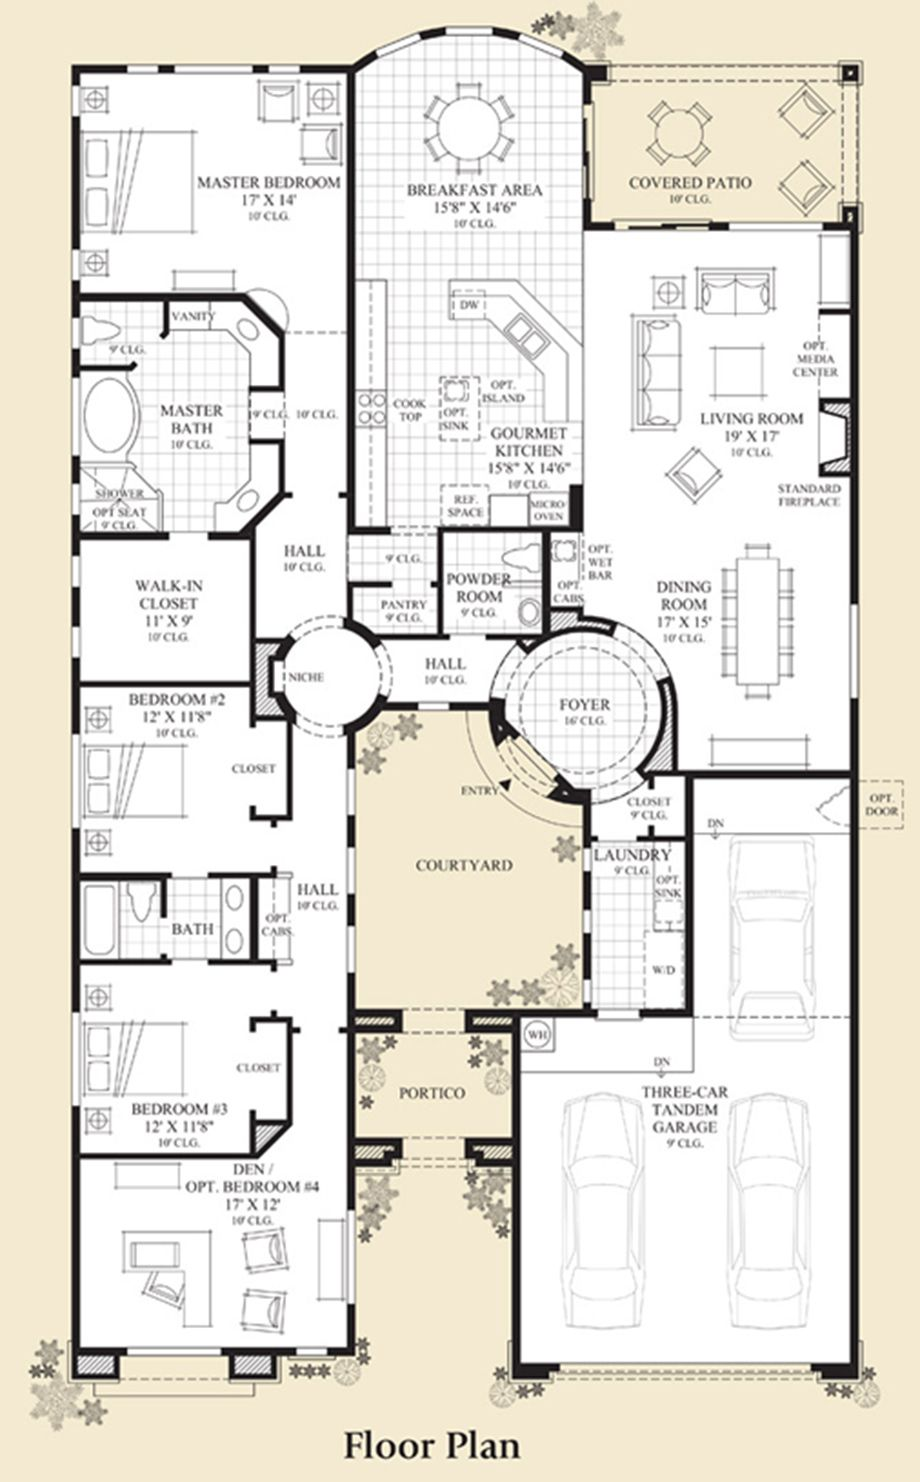 New Luxury Homes For Sale In Cave Creek Az Montevista Palo Verde Collection Courtyard House Plans Home Design Floor Plans House Blueprints